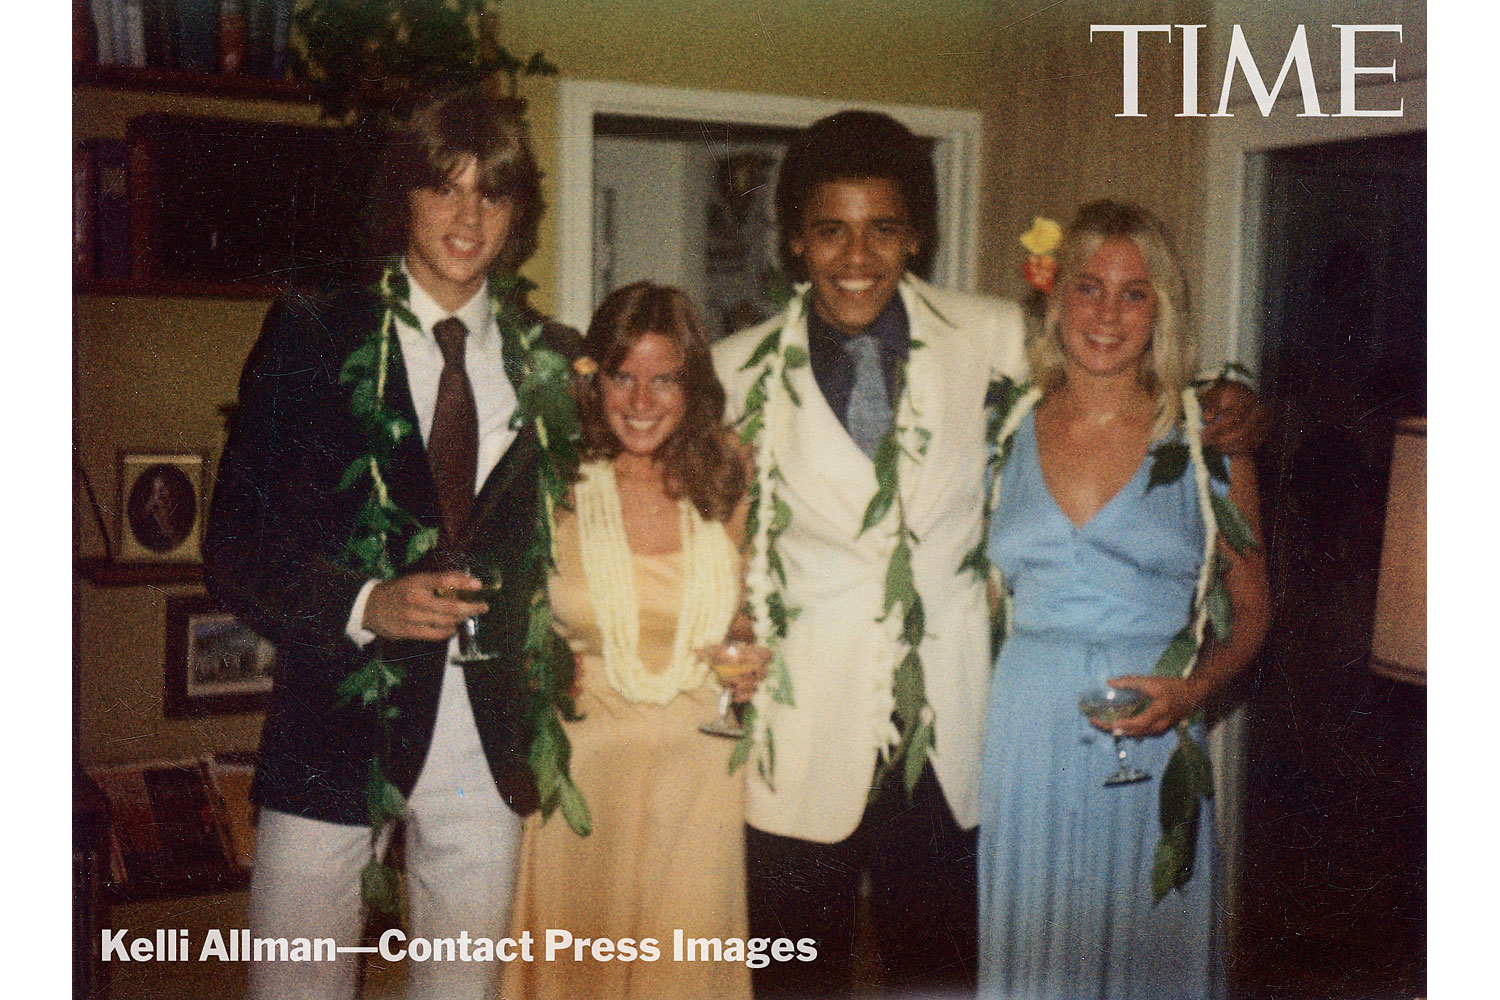 From left: Greg Orme, Kelli Allman, Barack Obama and Megan Hughes at Allman's parents' house in Honolulu.